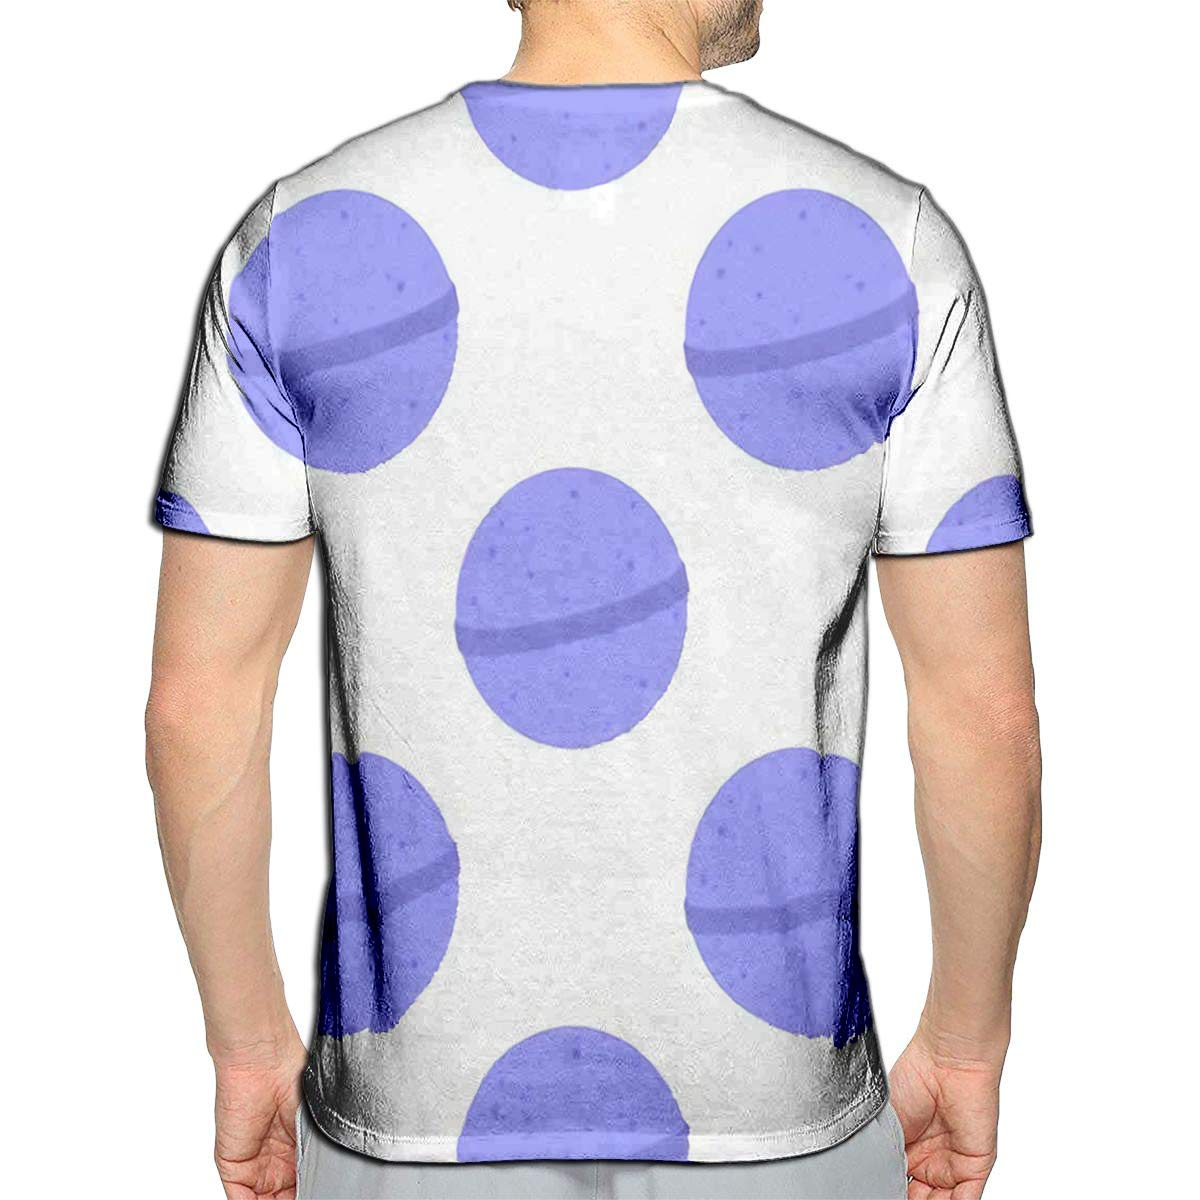 3D Printed T-Shirts Bath Bomb Cartoon Easy to Change Color Short Sleeve Tops Tee